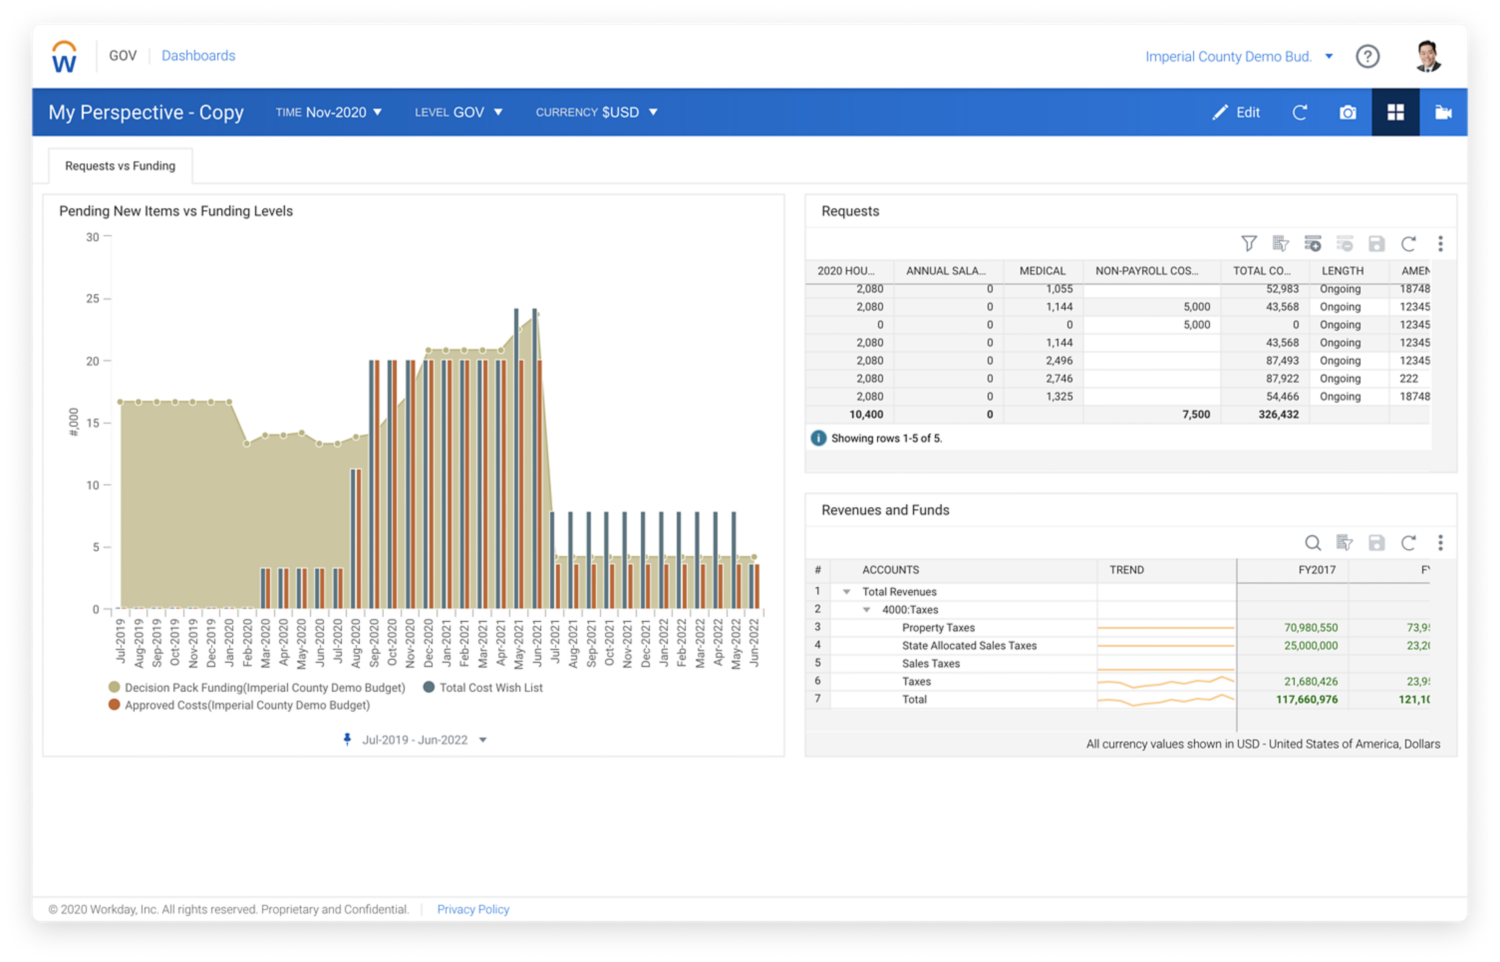 Workday Adaptive Planning for Government, Decision Pack Funding Dashboard